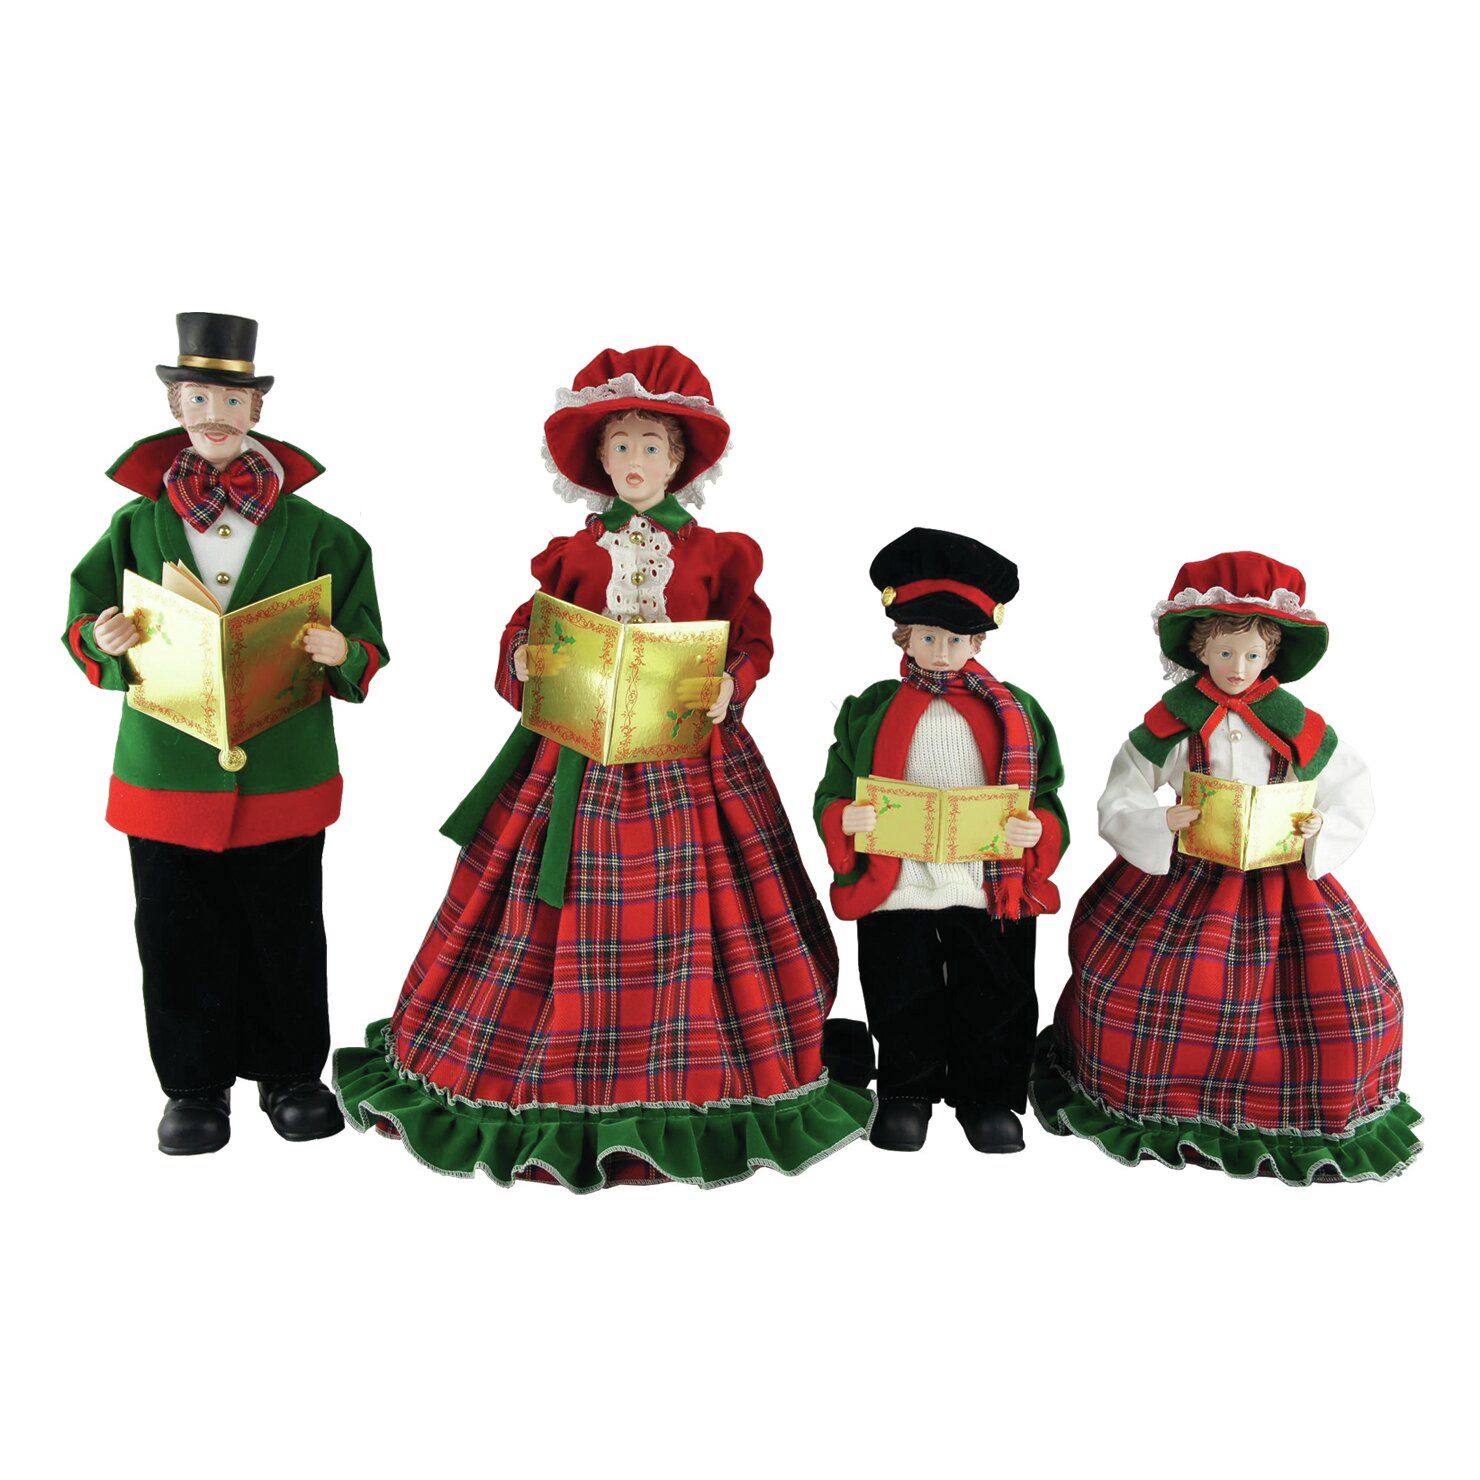 Set Of 4 15 To 18 Victorian Carolers By Santa S Workshop: Santa's Workshop 4 Piece Christmas Day Caroler Figurine